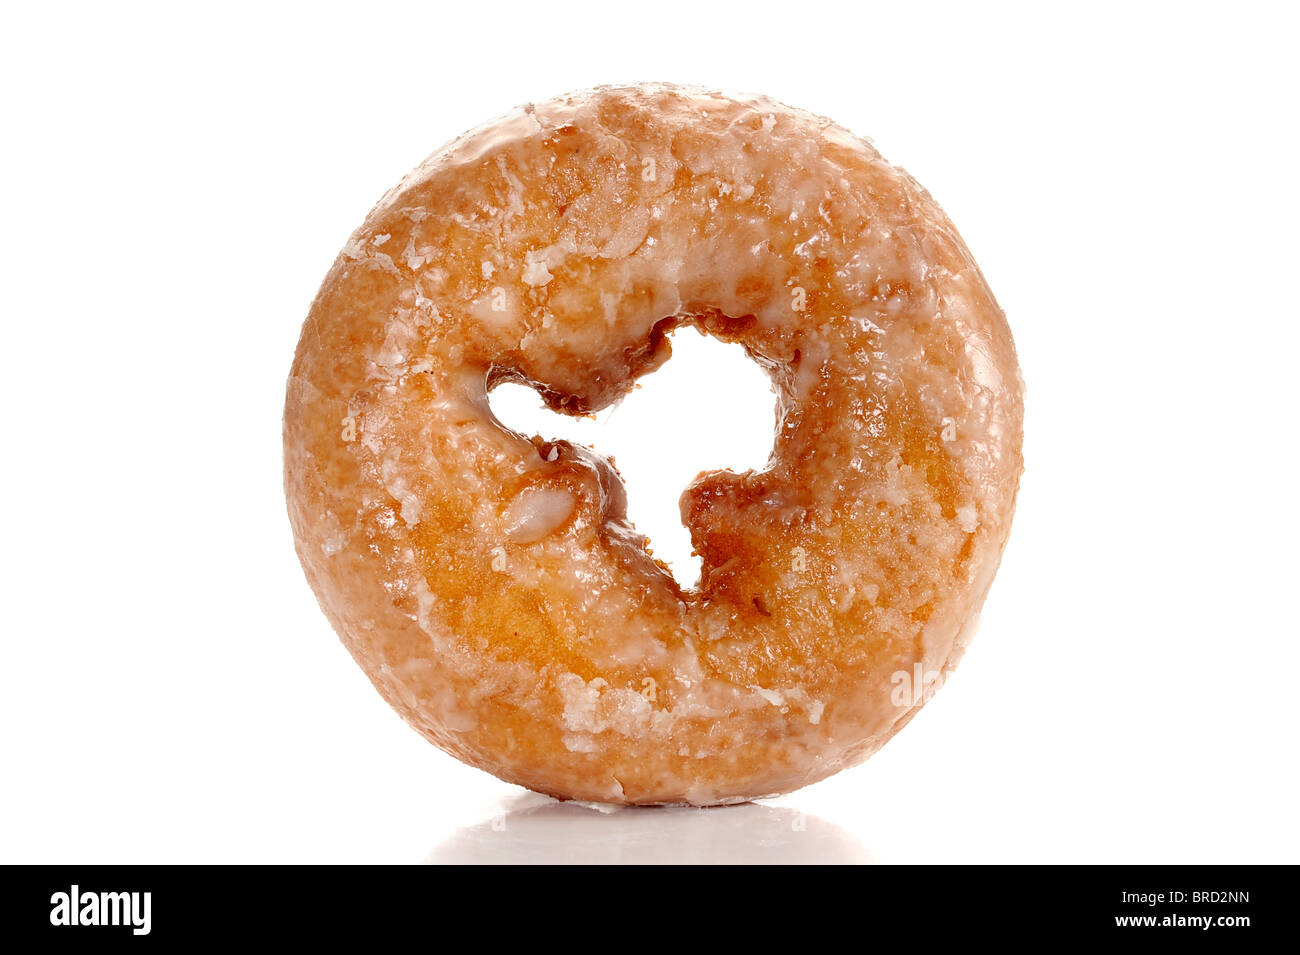 Close-up image of a sugar glazed donut studio isolated on a white background - Stock Image